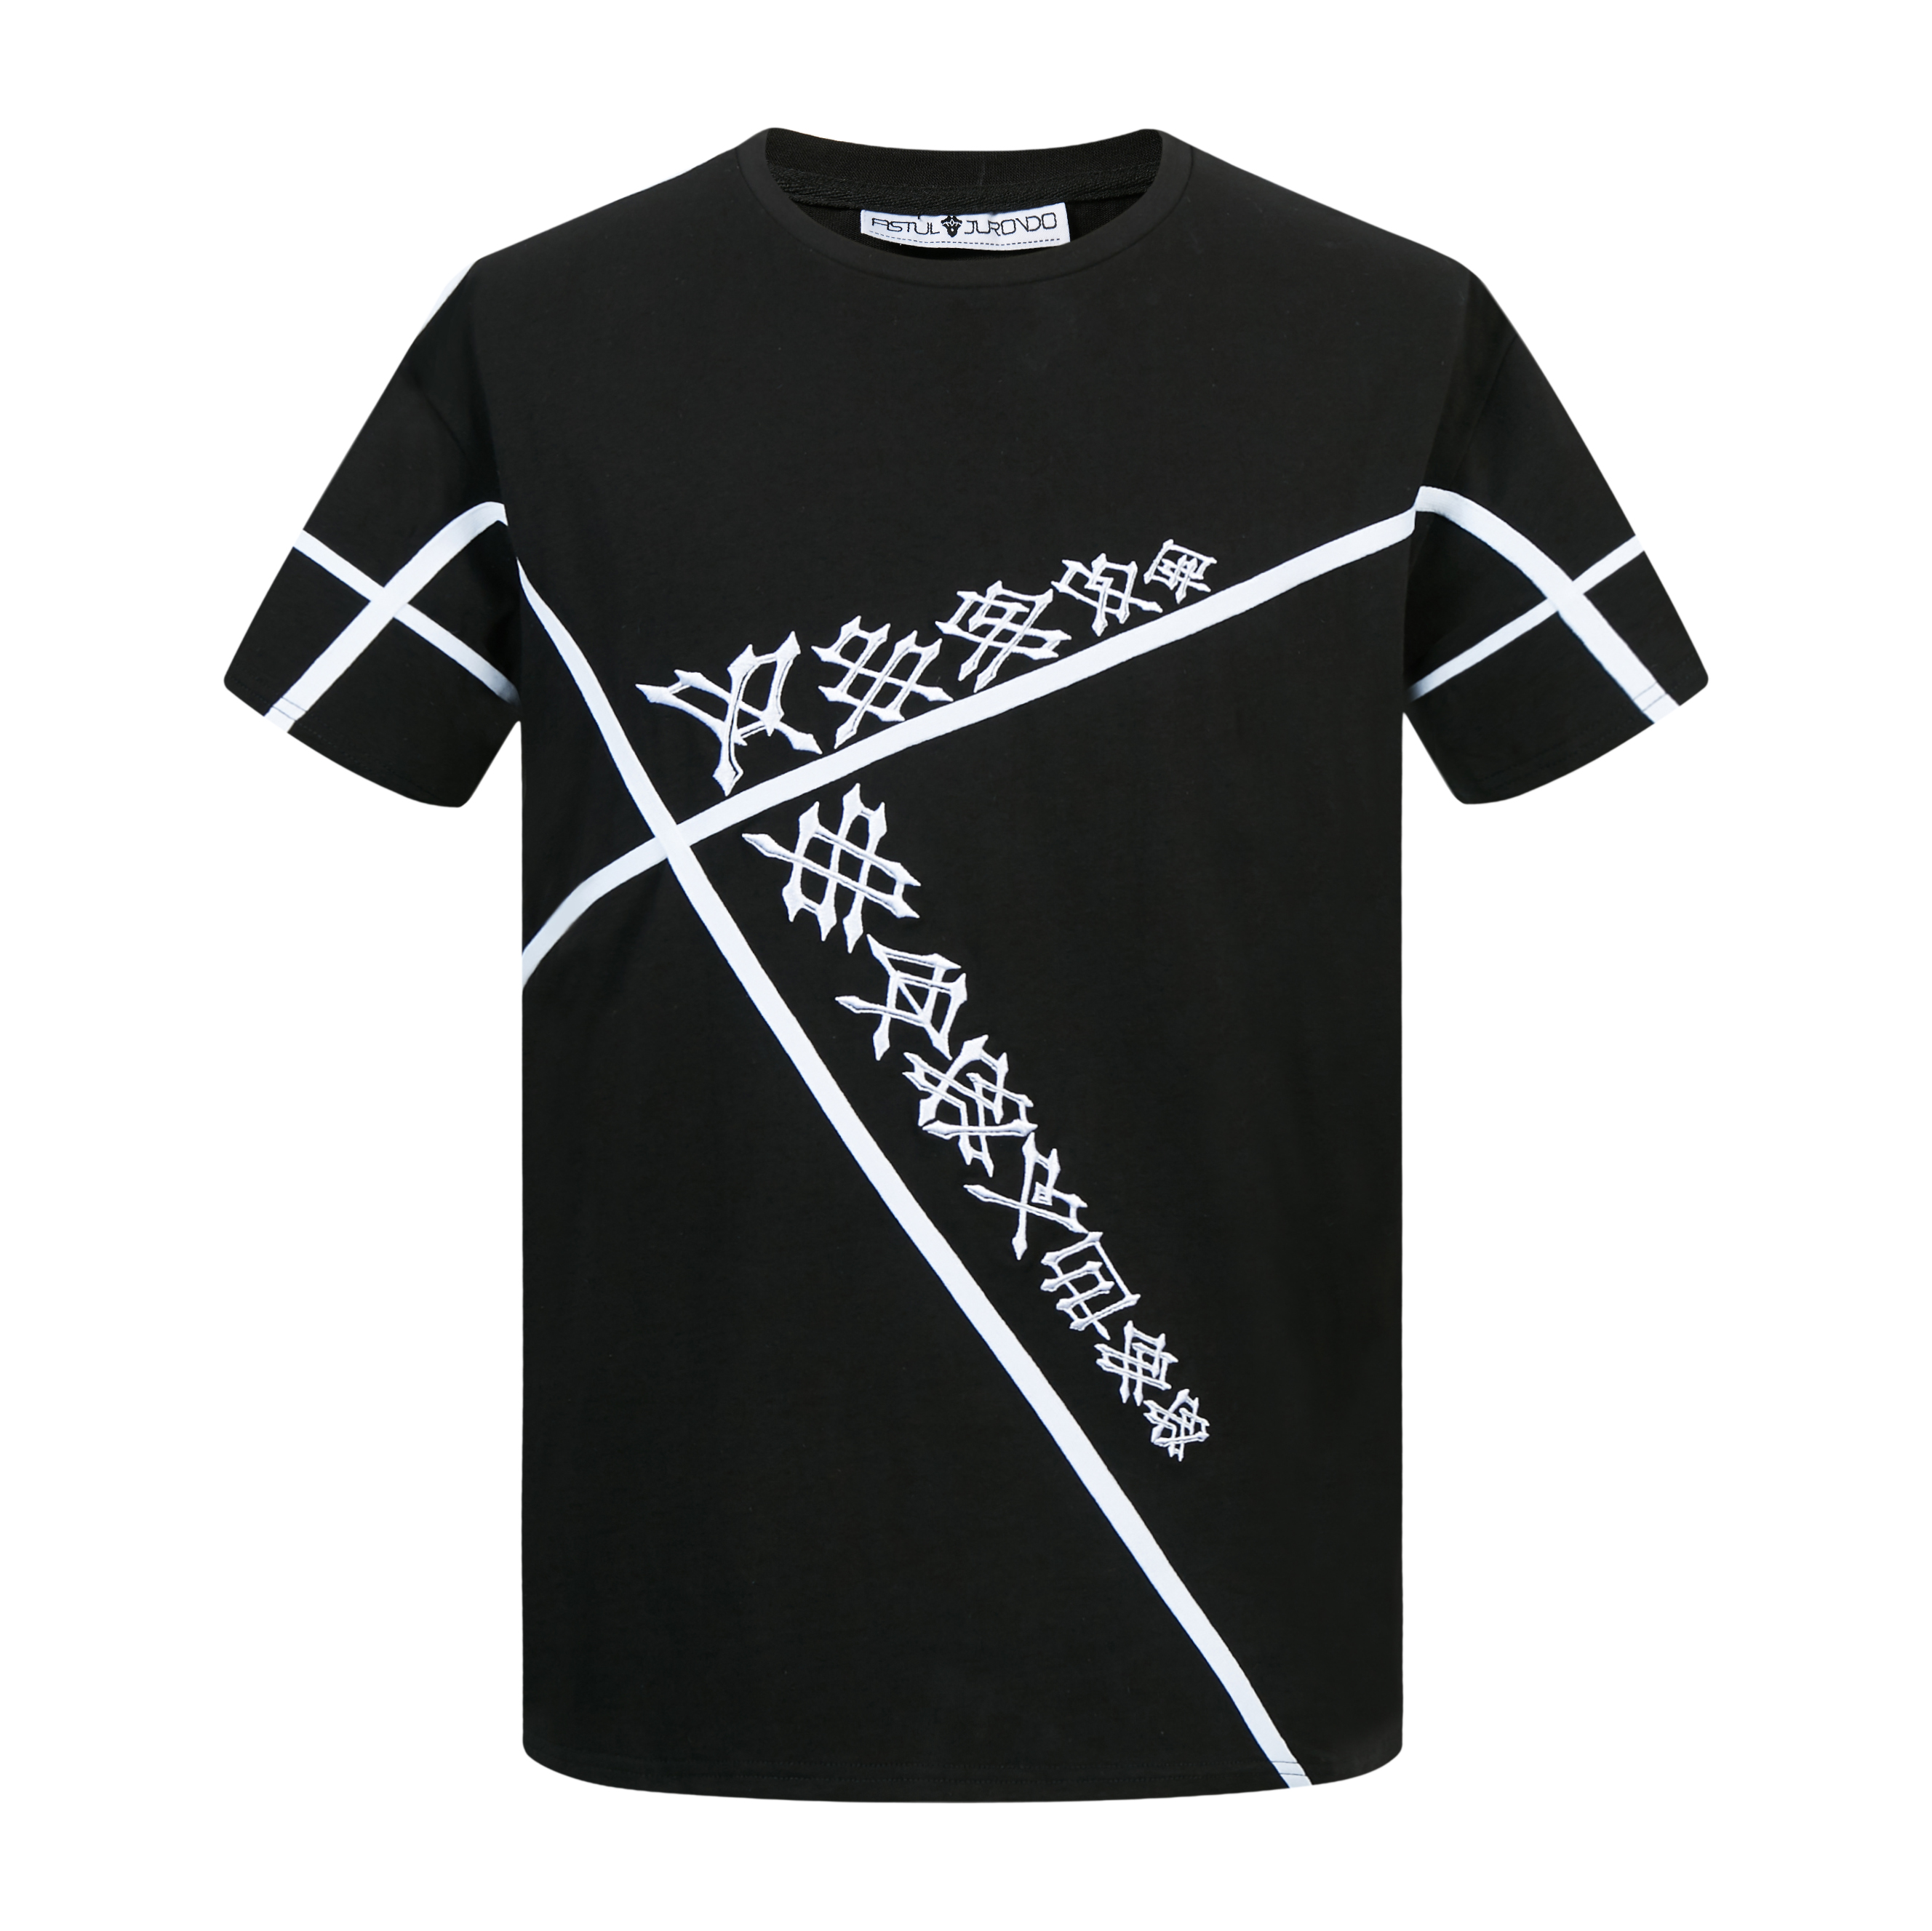 Ju Rong Tai mens cotton T-shirt boys punk topology letter T-shirt: Gothic sharp dark